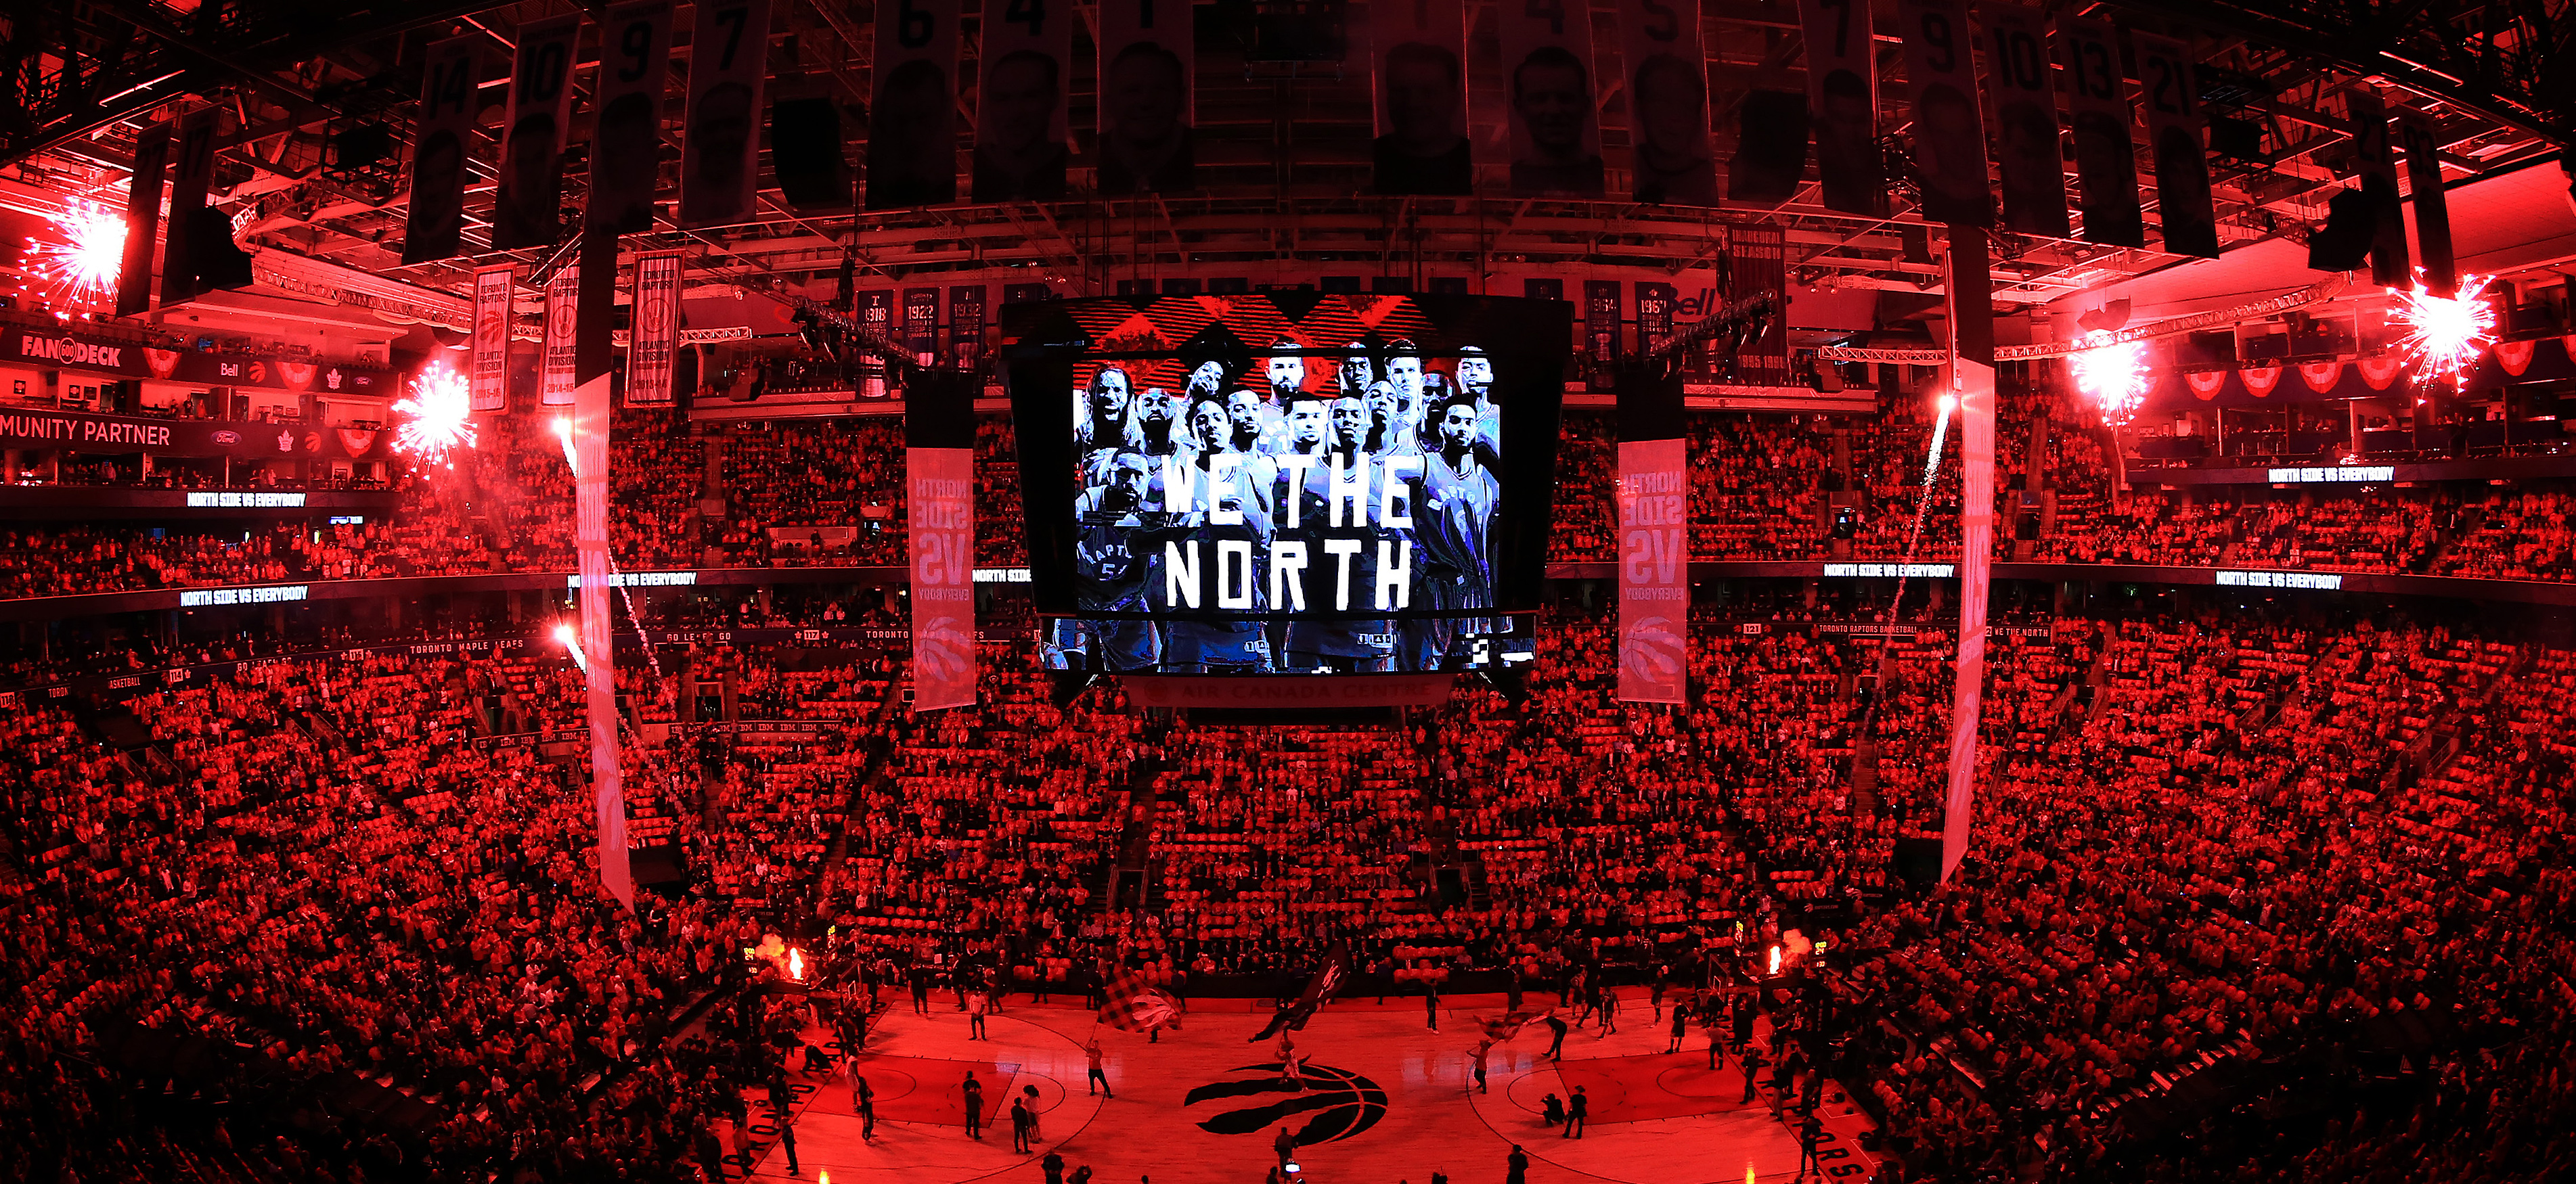 View of a Raptors' crowd at the Air Canada Centre featuring the We The North theme on-screen.